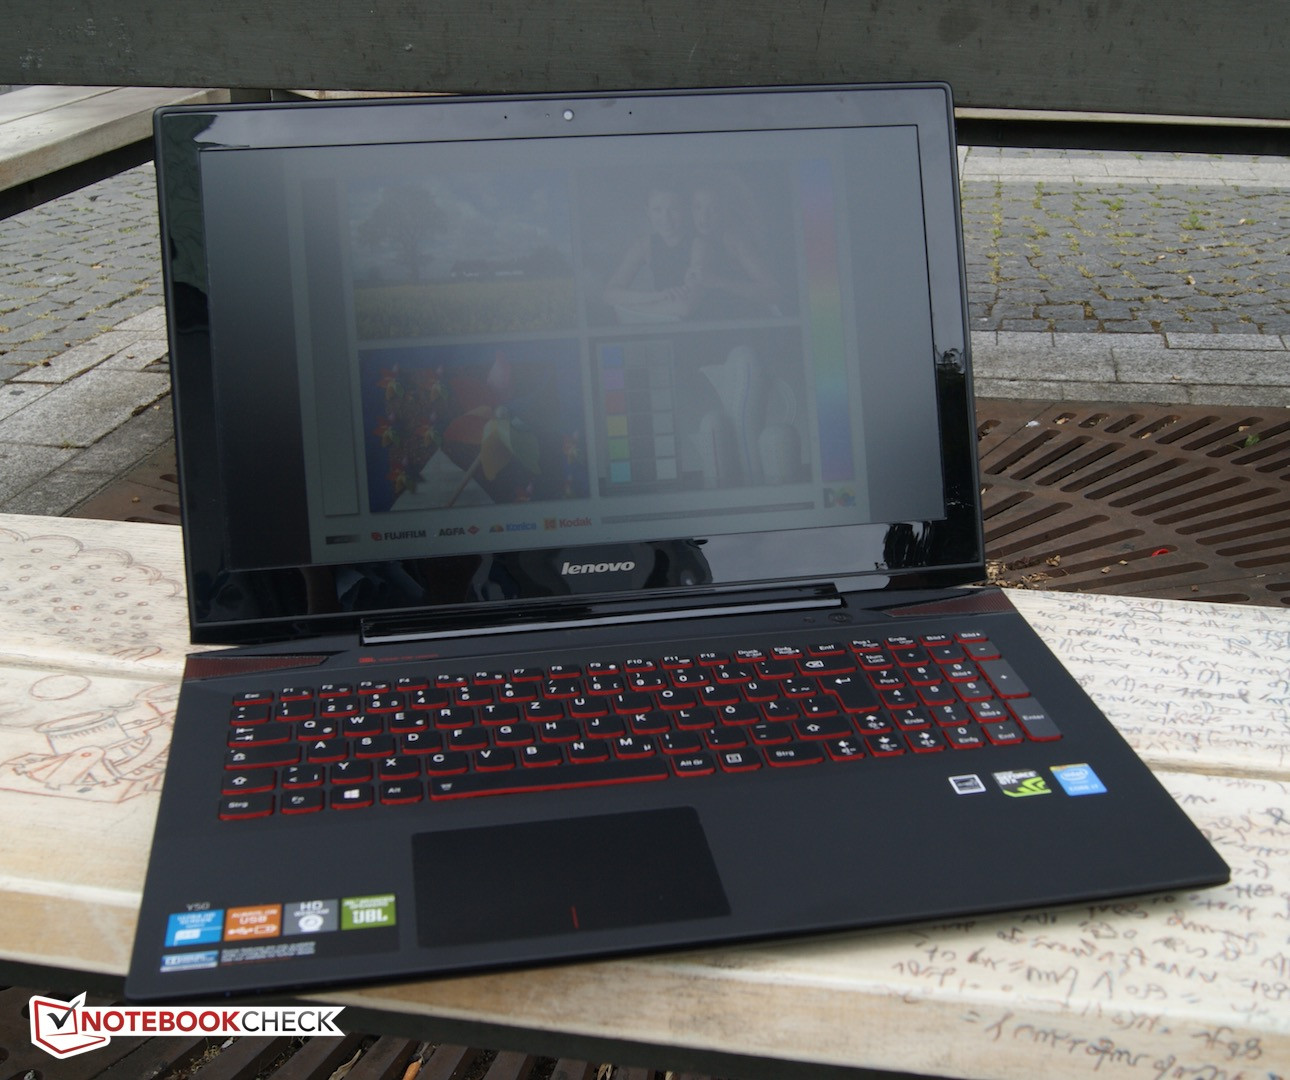 Face Off Asus Rog G501 Vs Lenovo Y50 Vs Acer Aspire V15 Nitro Notebookcheck Net Reviews